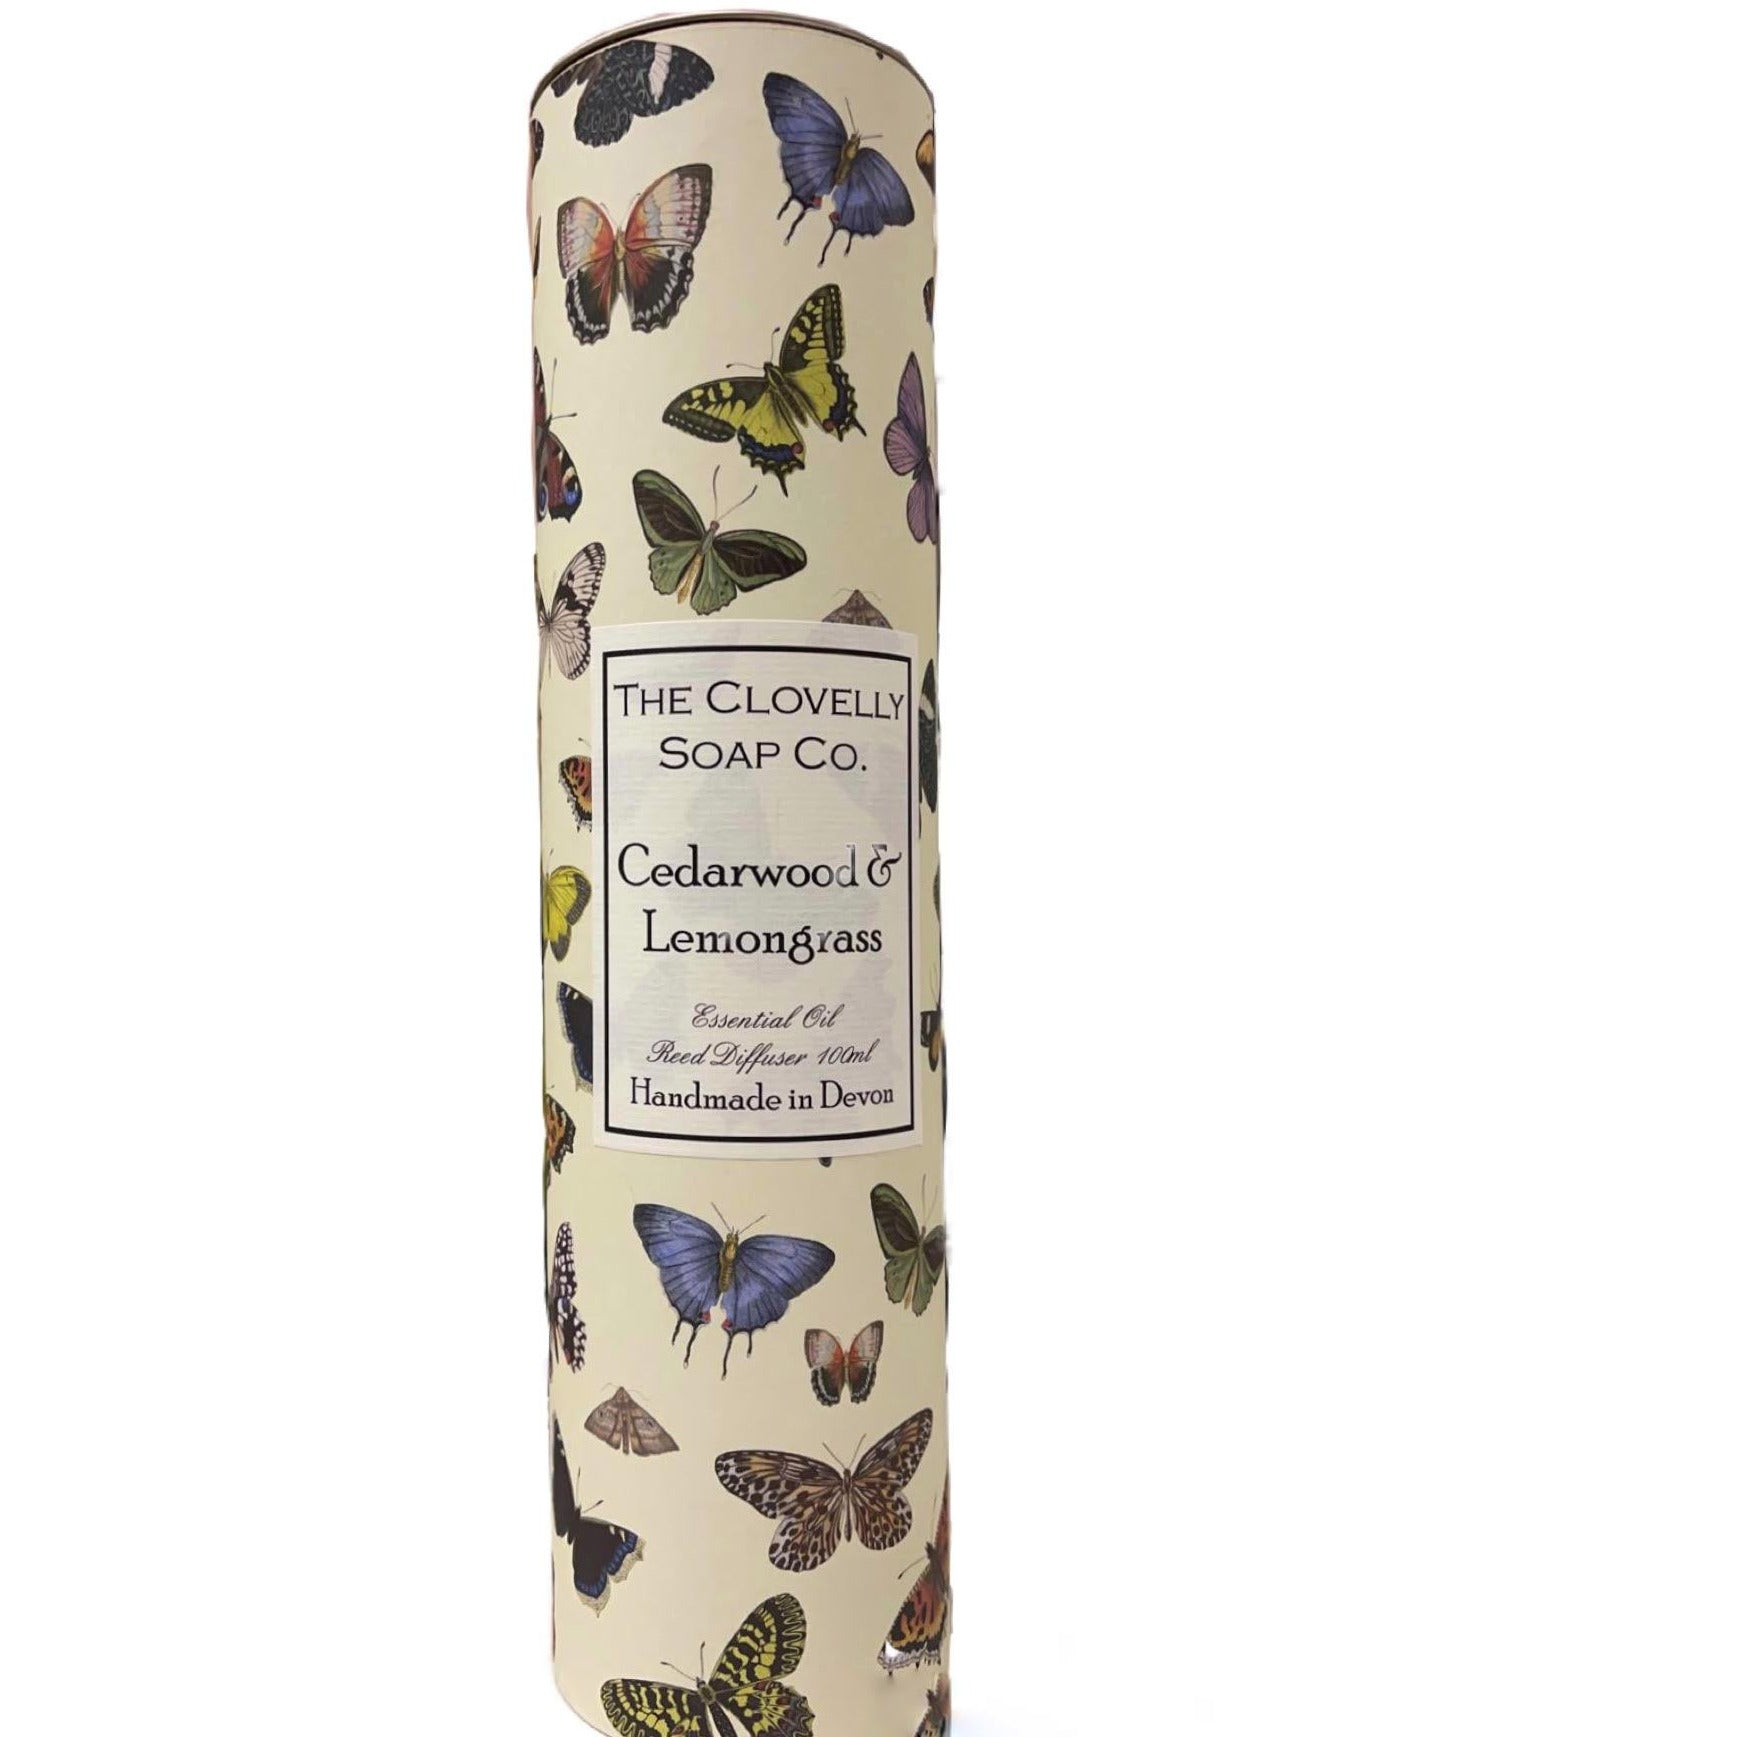 NEW PACKAGING Cedarwood & Lemongrass Reed Diffuser, made using eco friendly Augeo diffuser liquid and Pure Therapeutic Grade Essential Oils - natoorio